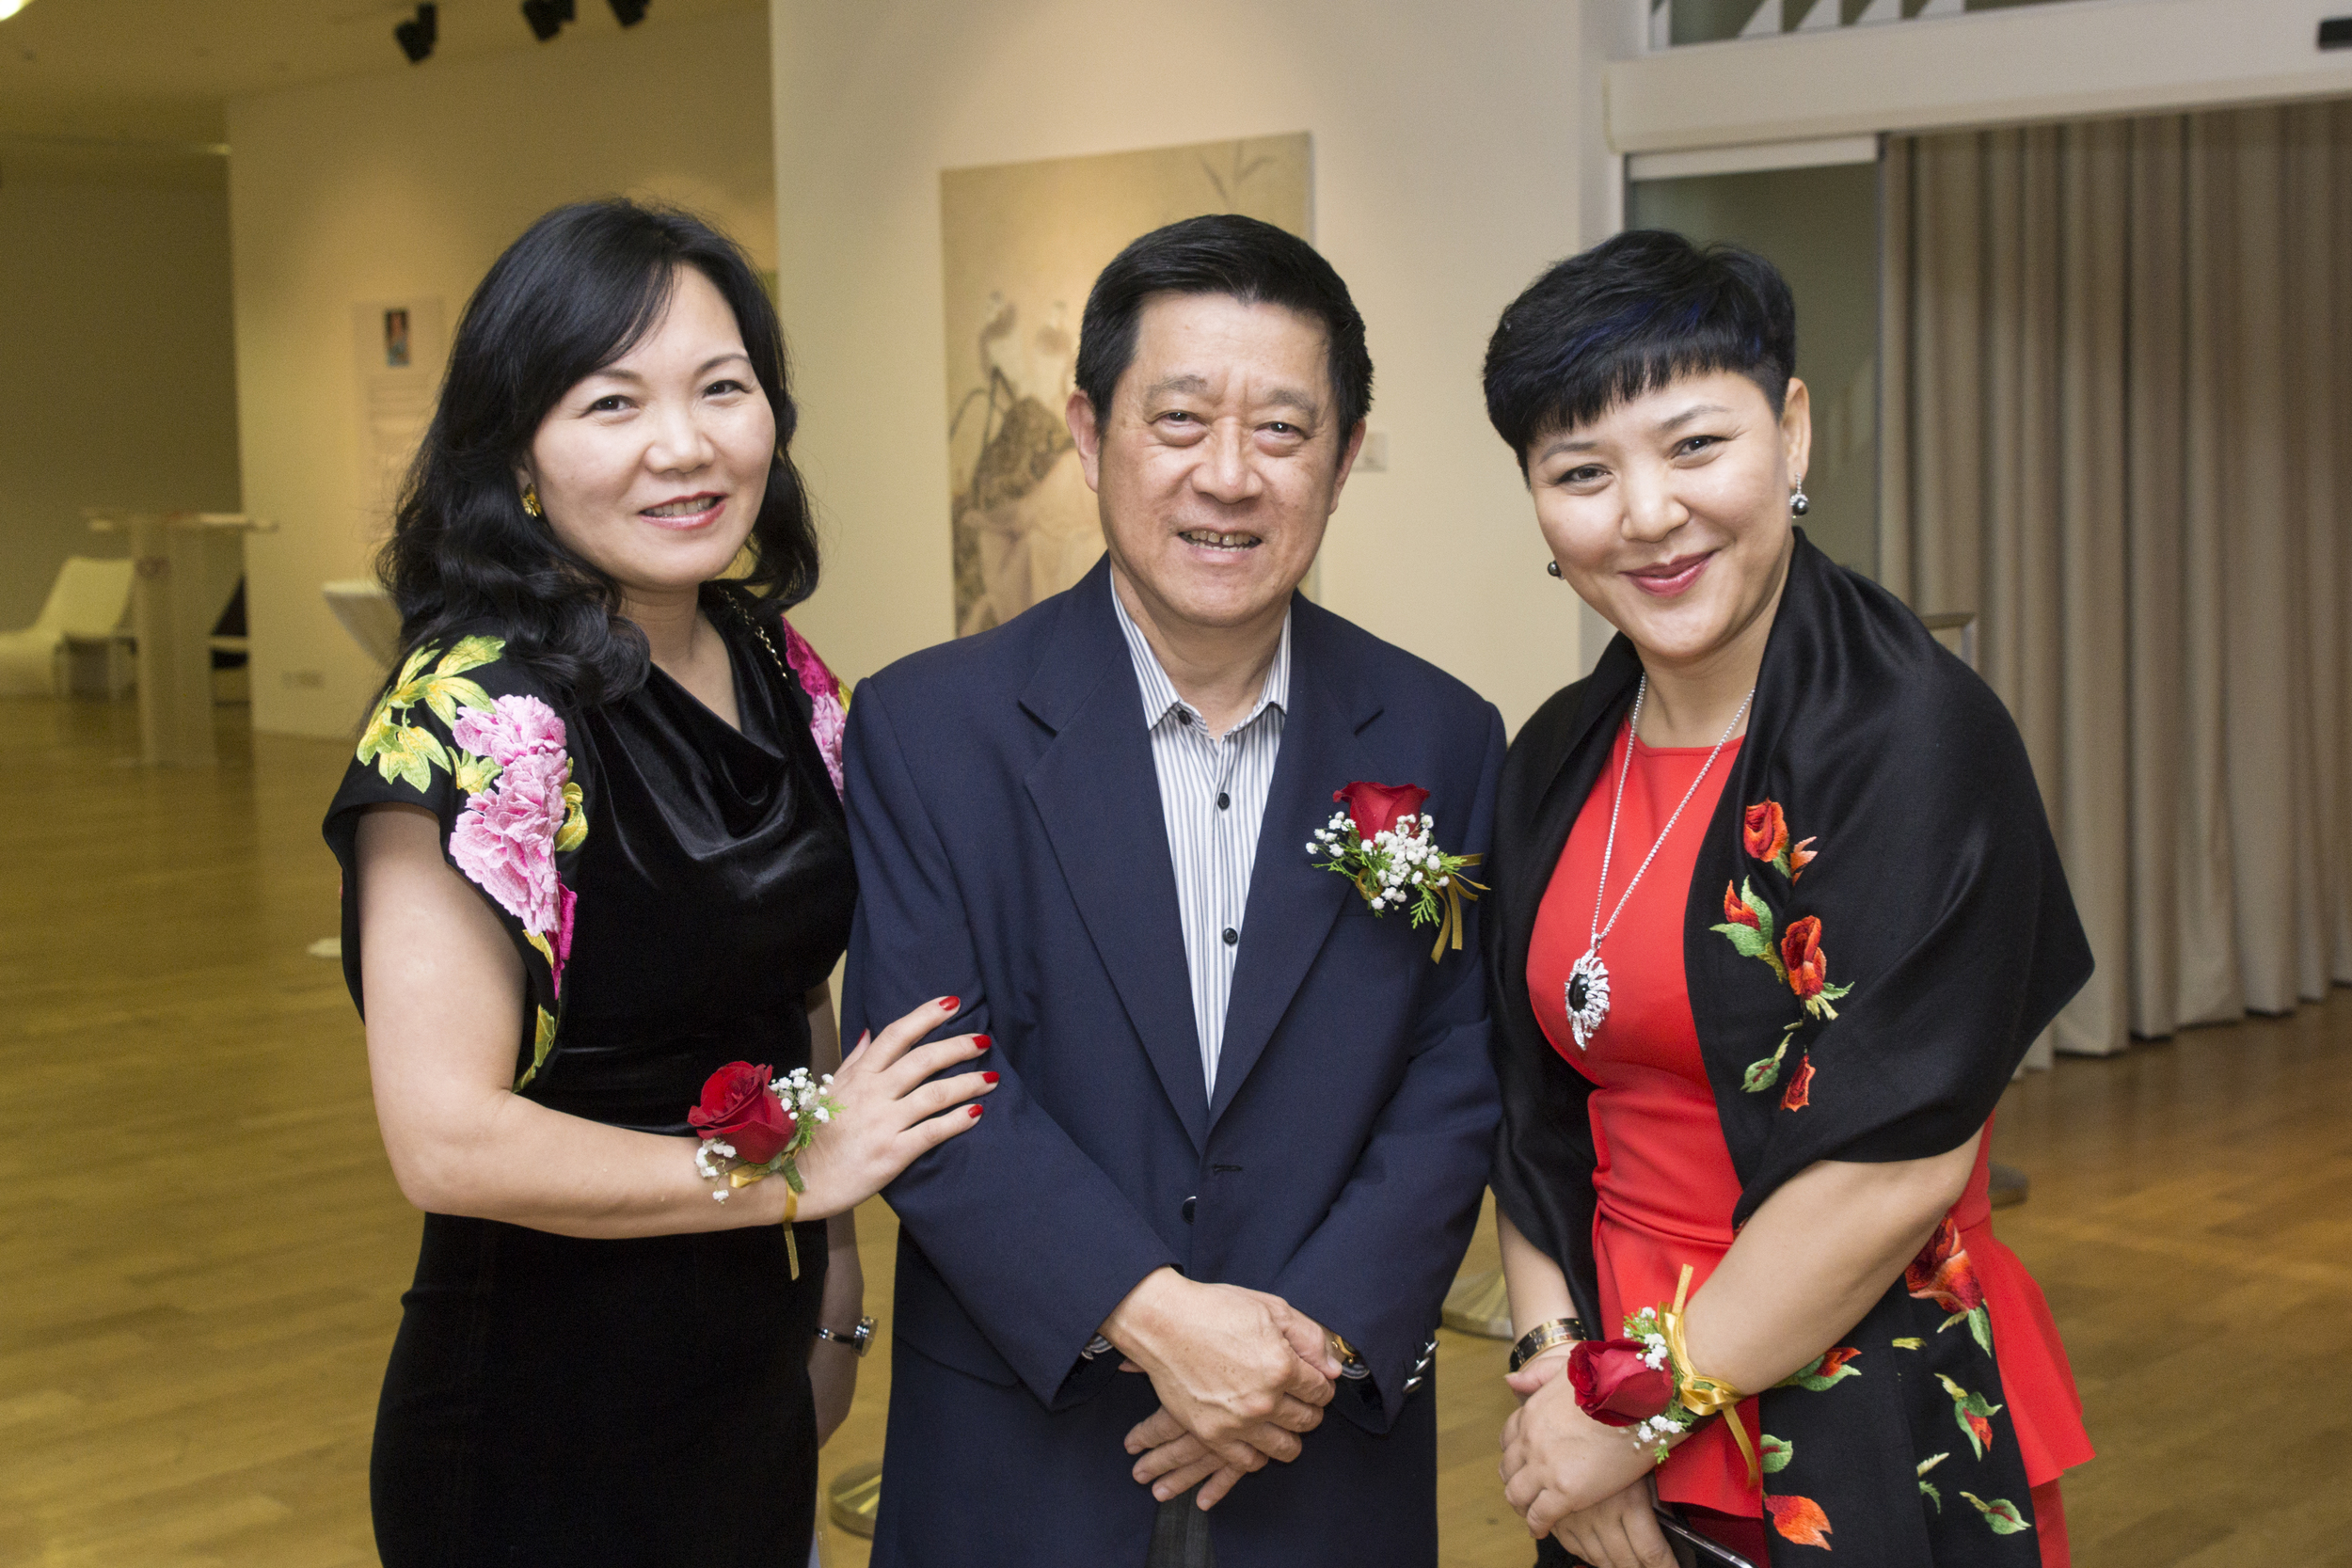 Ms. Jenny Zhu Huimin, Lisa Quan With Mr. Choo Thiam Siew